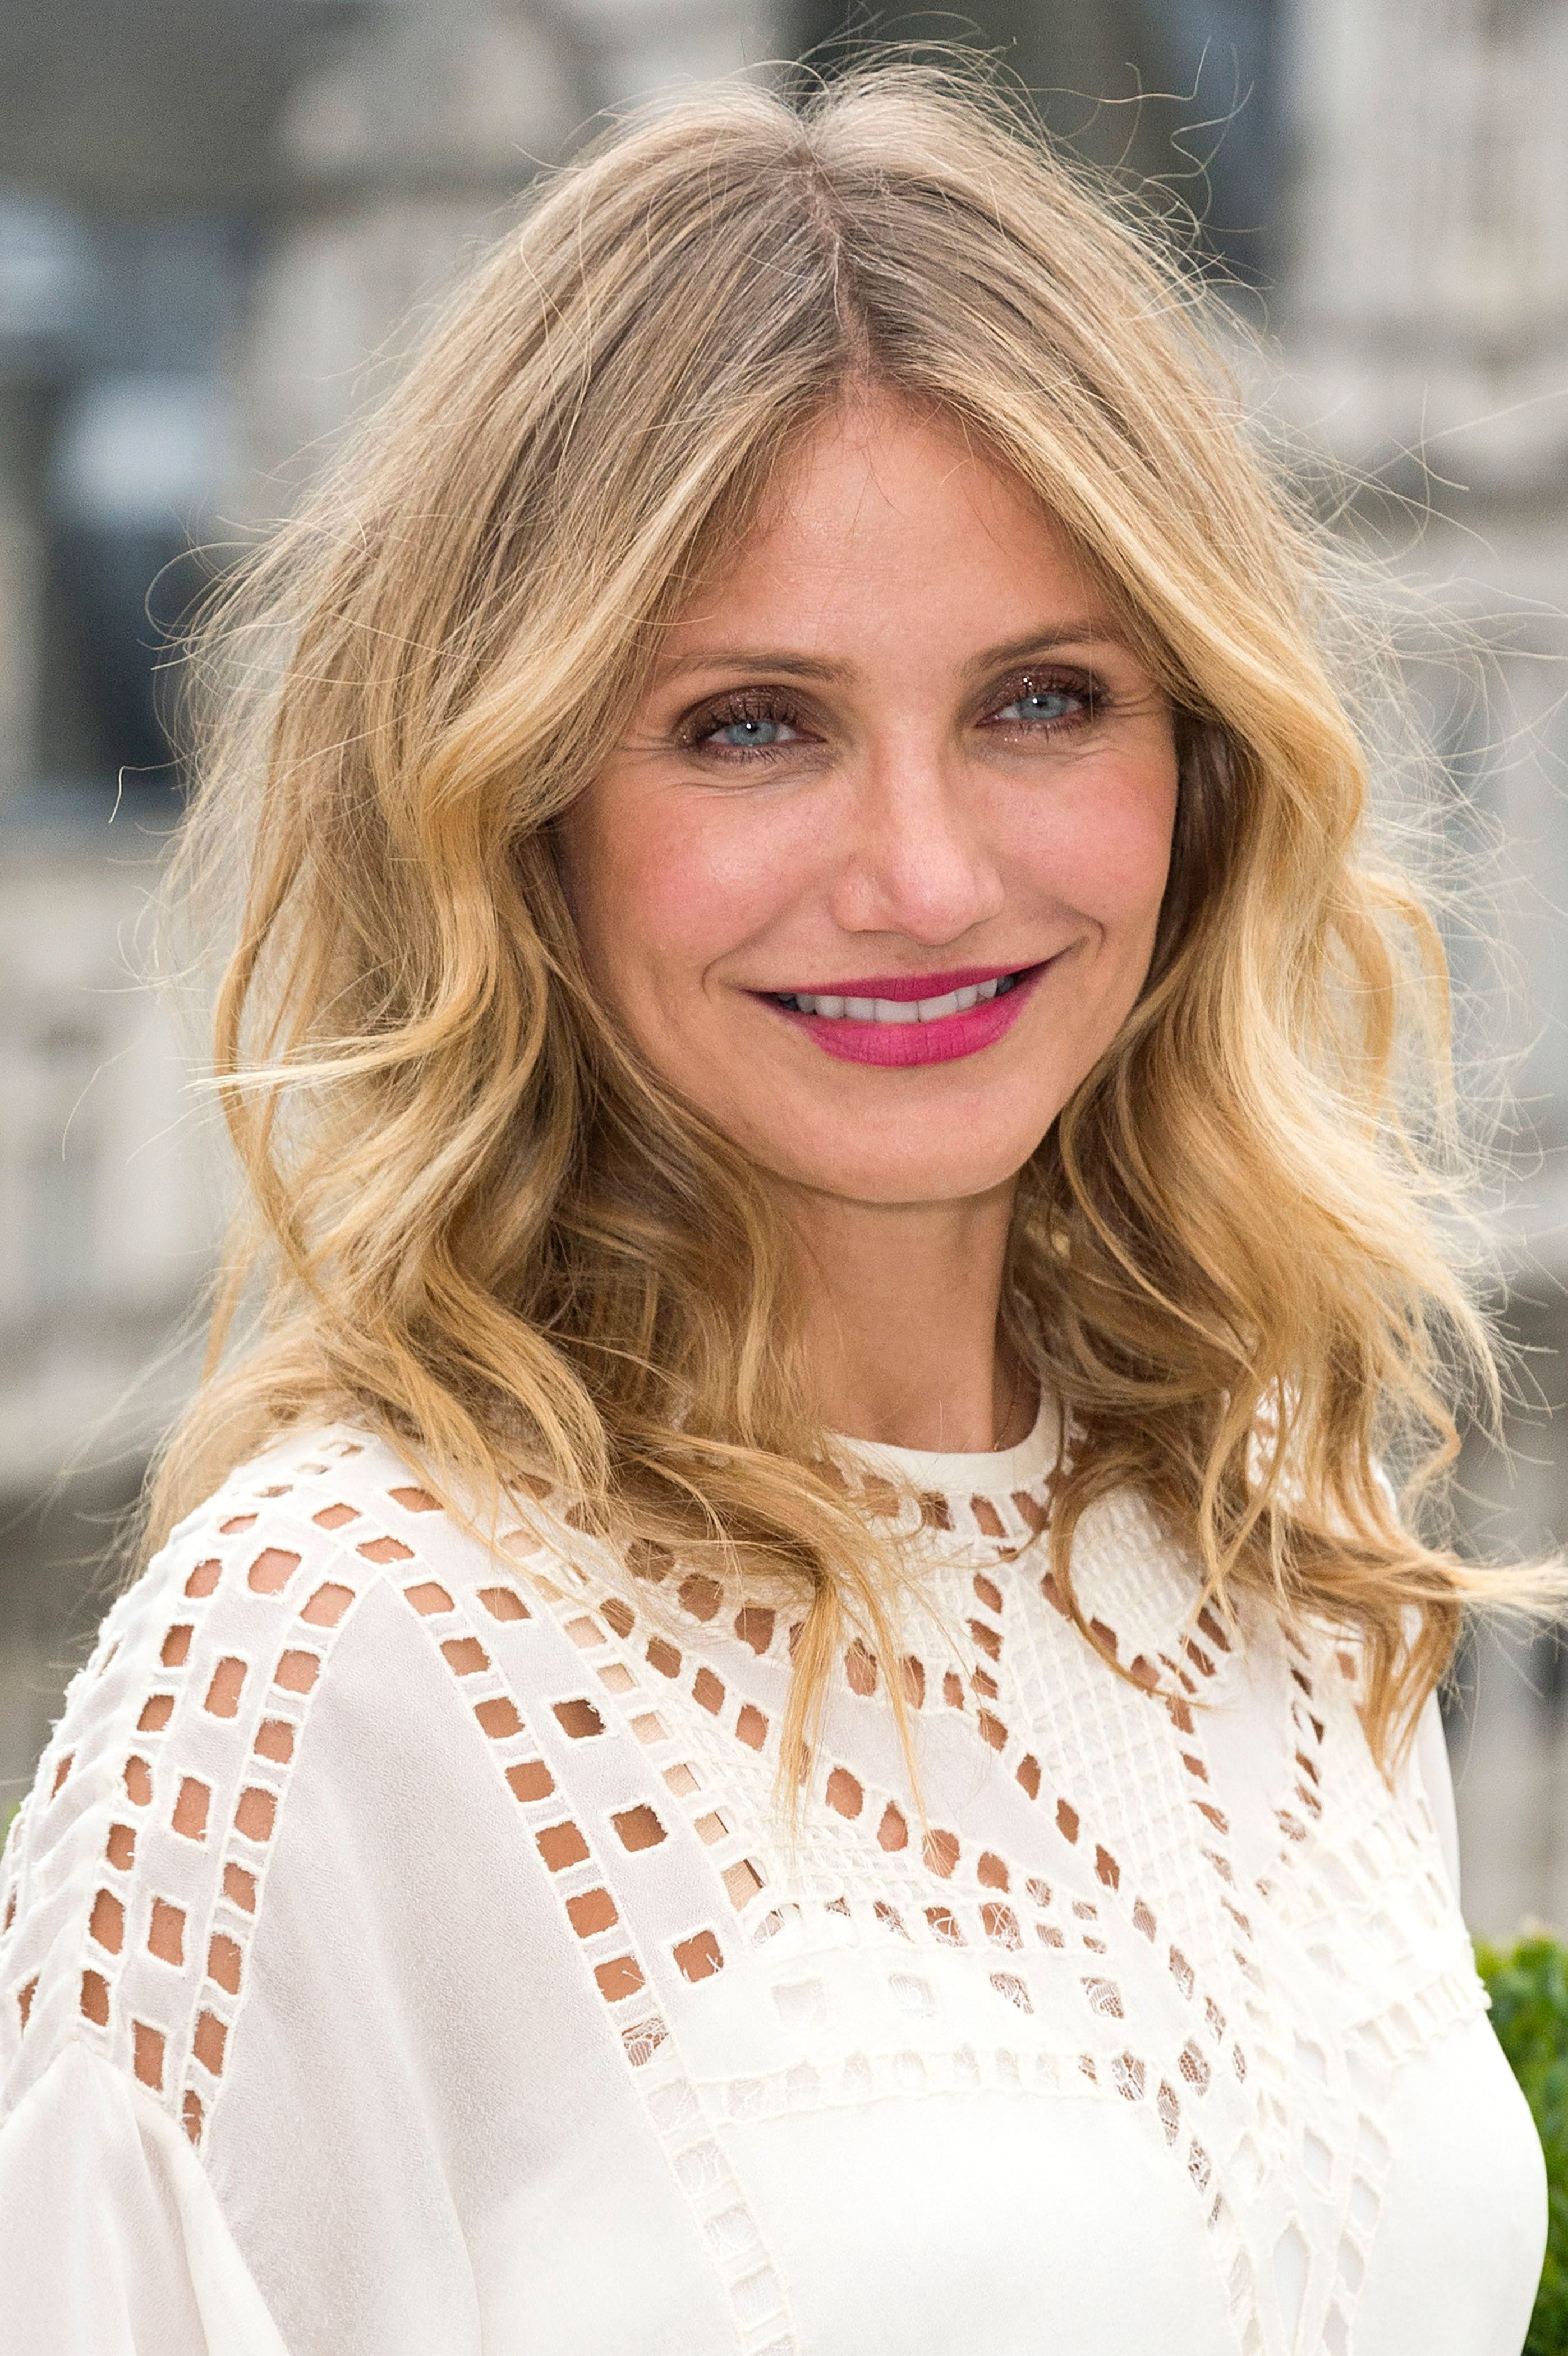 Cameron Diaz in white dress with beachy waves hairstyles for very fine hair